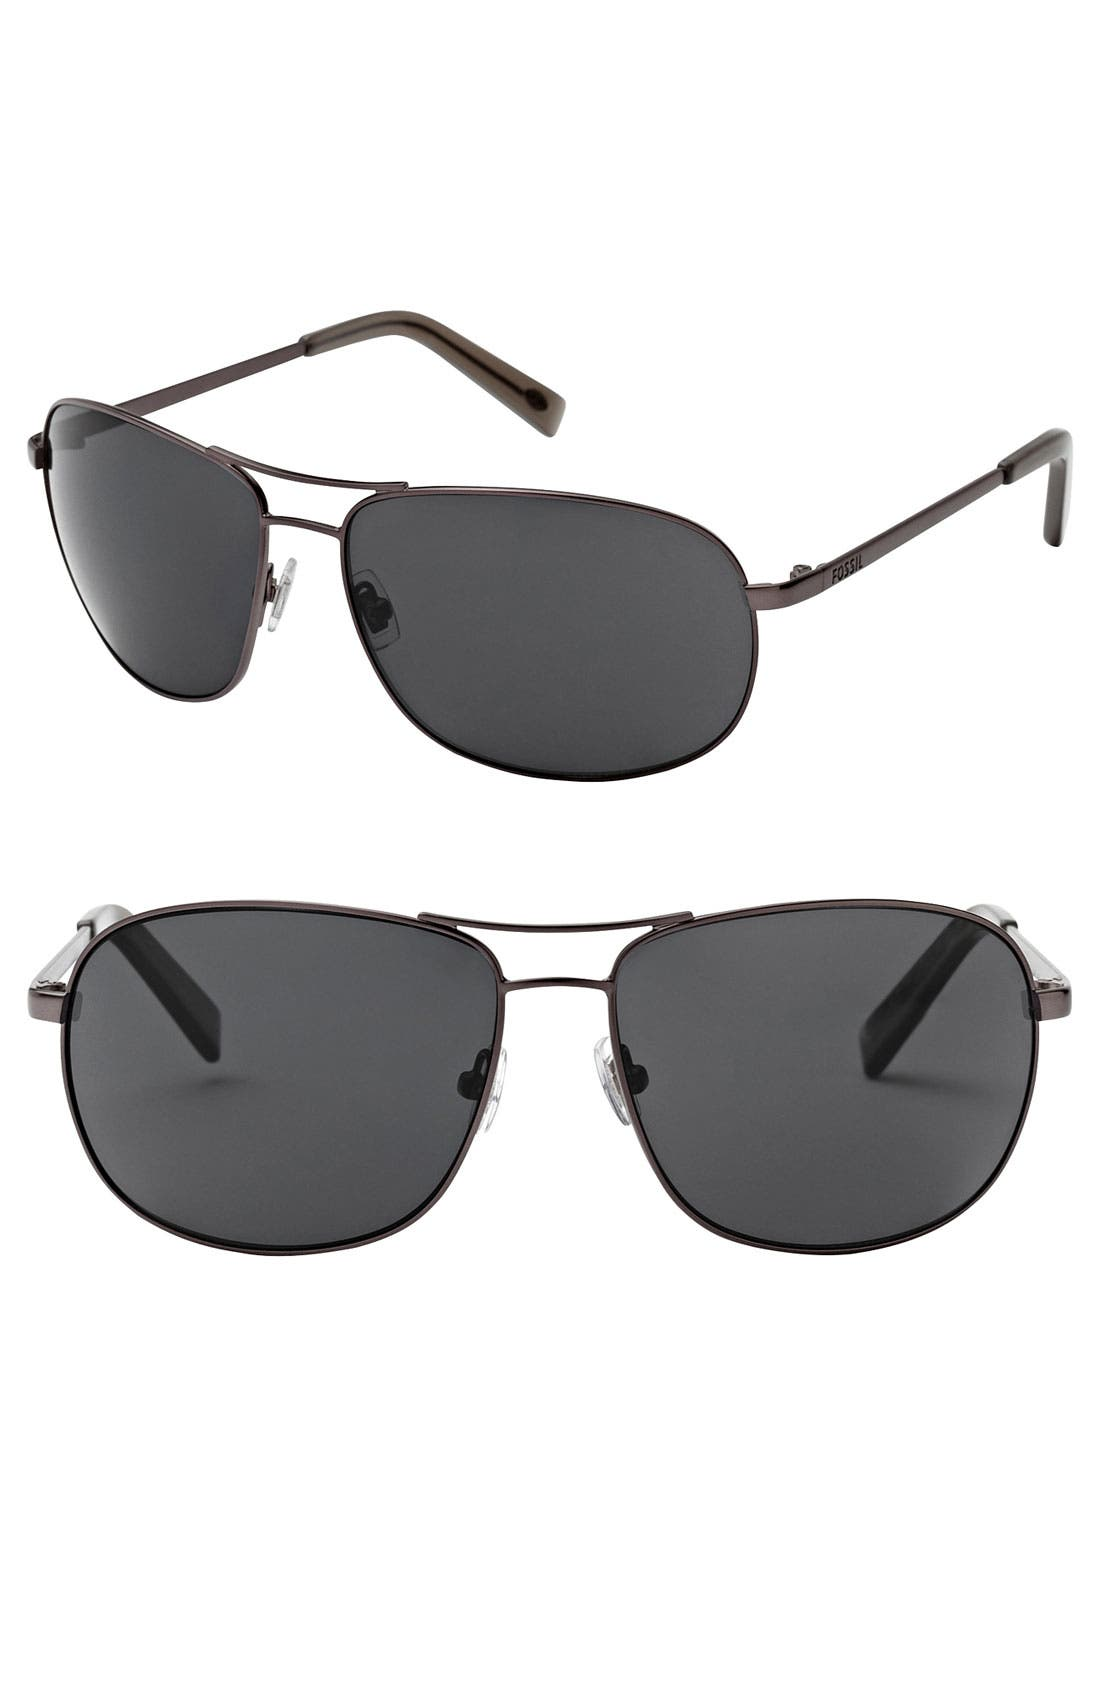 Alternate Image 1 Selected - Fossil 'Dylan' 62mm Aviator Sunglasses